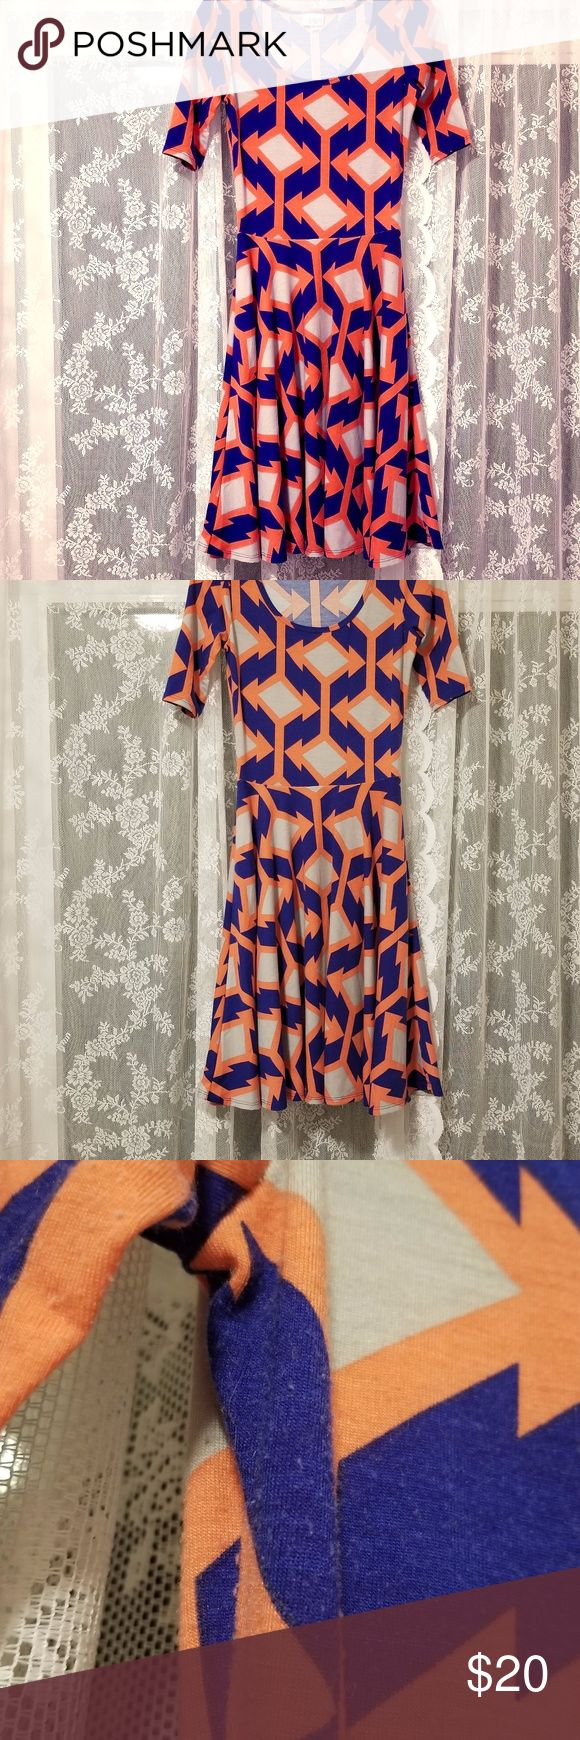 Lularoe Blue Coral and Grey Nicole XS This listing is for a Lularoe blue, coral, and grey Nicole dress, size extra small. The colorful pattern is more coral than orange in person. It is made in the USA and in GUC. Please review light pilling in photos. It is mainly under the arm and not noticeable during wear. LuLaRoe Dresses Long Sleeve